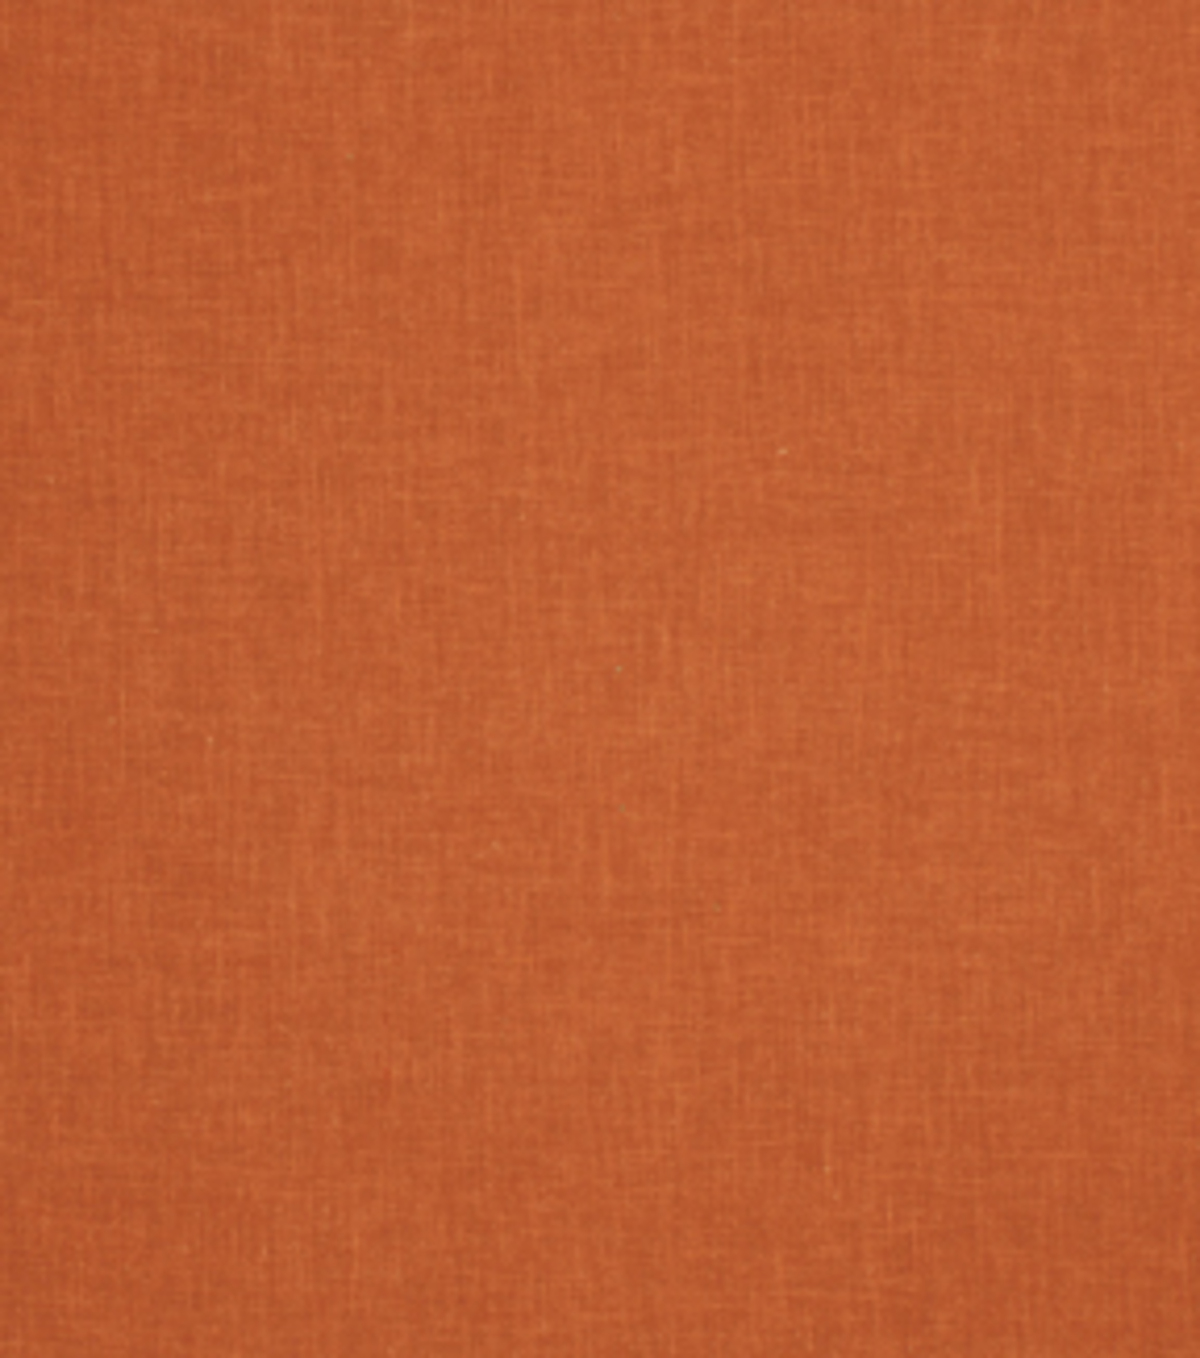 Home Decor 8\u0022x8\u0022 Fabric Swatch-Eaton Square Bannister Orange